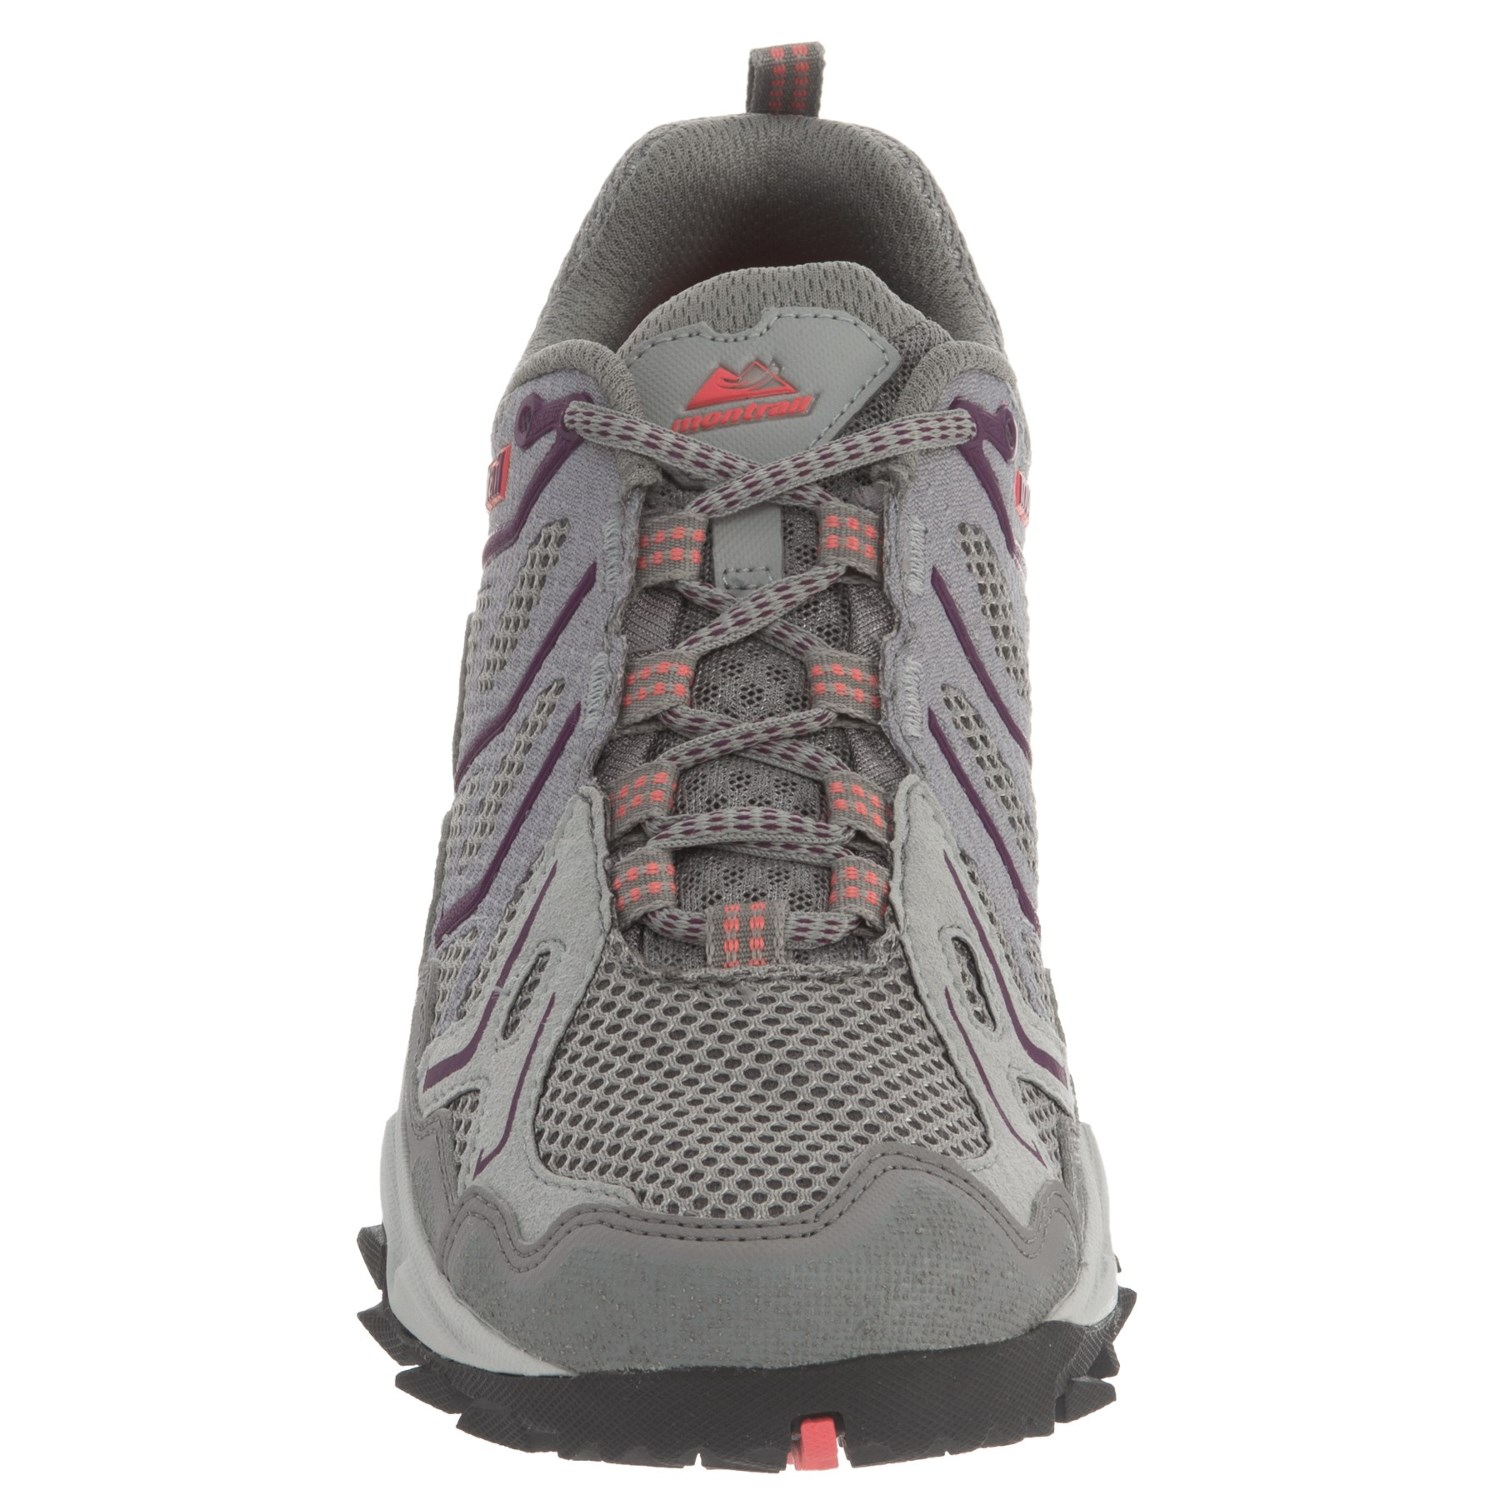 3c3d3a2a234b Montrail Trans Alps Trail Running Shoes (For Women) - Save 62%